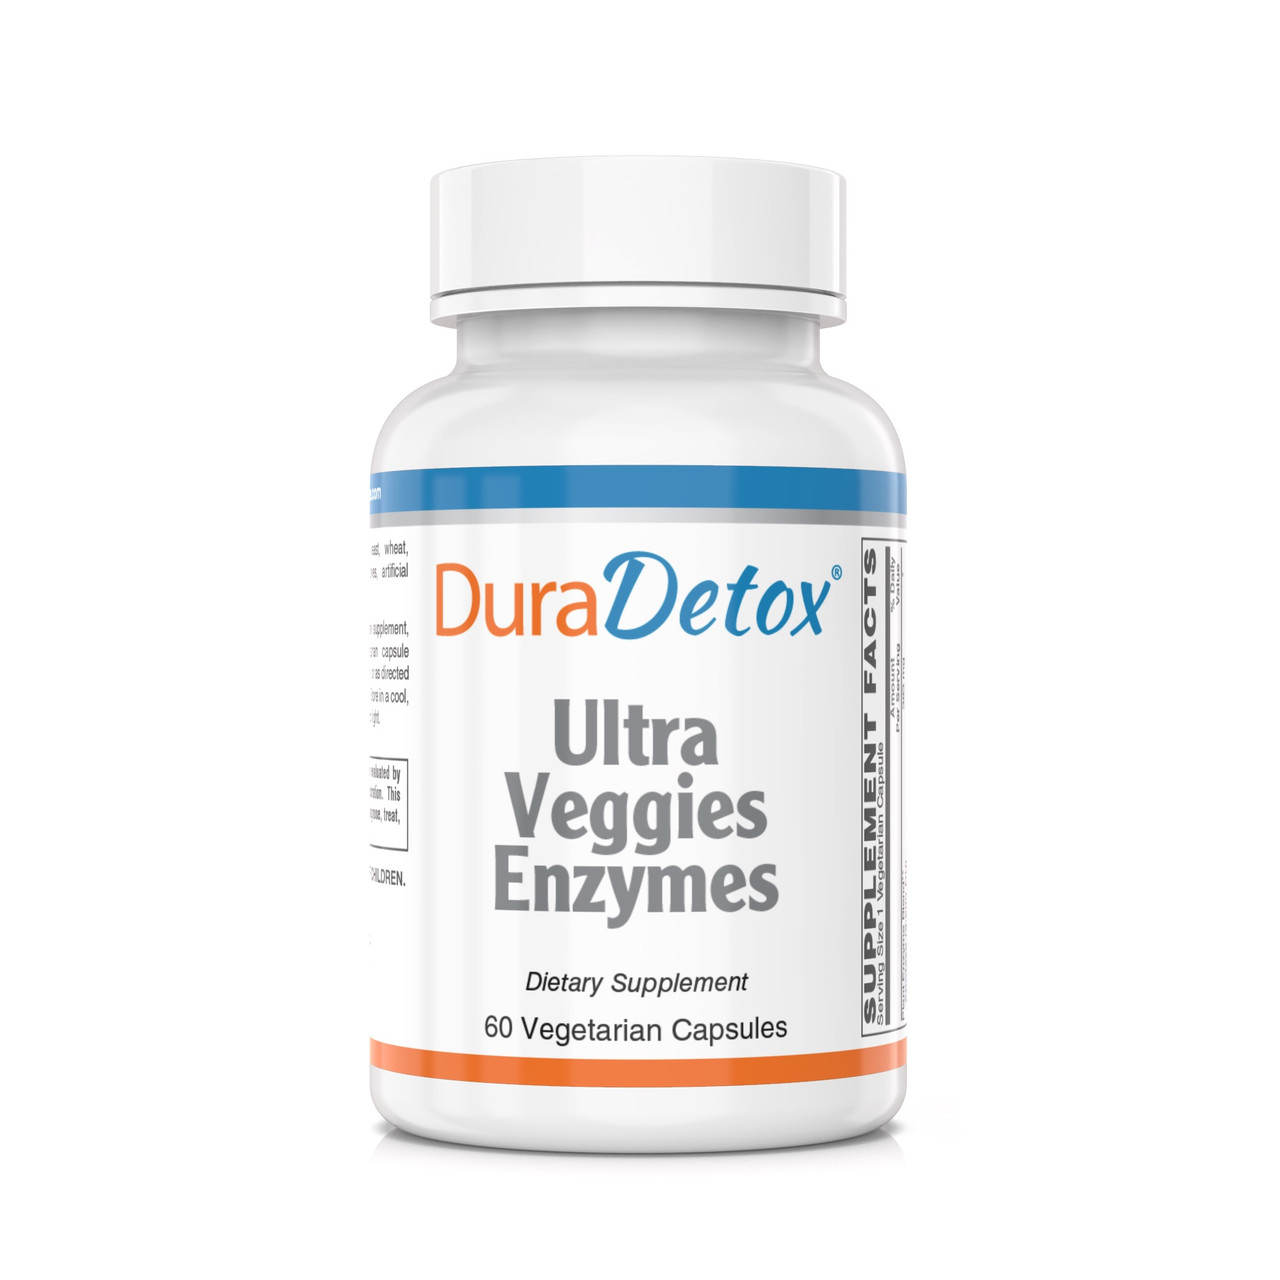 Digestive Enzymes - 15 patented vegetarian Digestive enzymes, active even in the low pH (acid content) of the stomach.